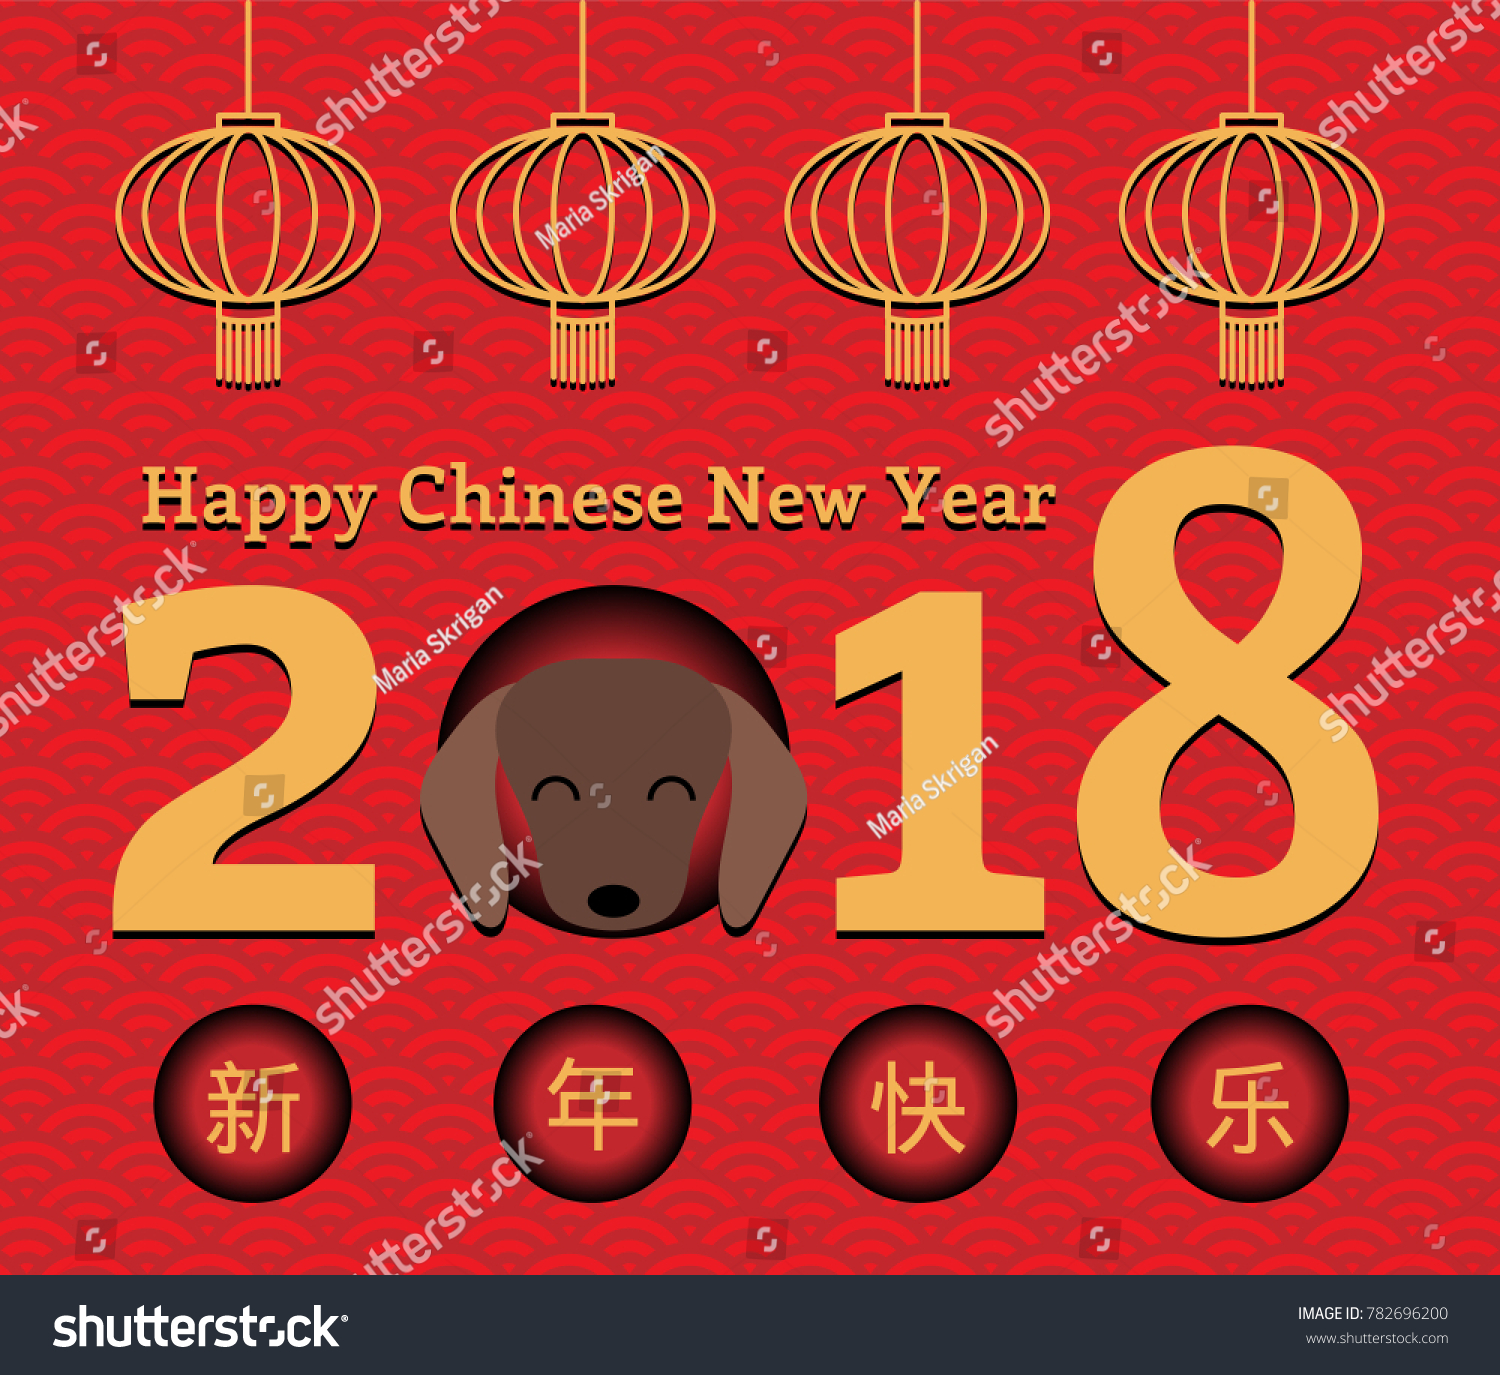 2018 chinese new year greeting card stock vector 782696200 2018 chinese new year greeting card banner with cute funny cartoon dog numbers kristyandbryce Gallery